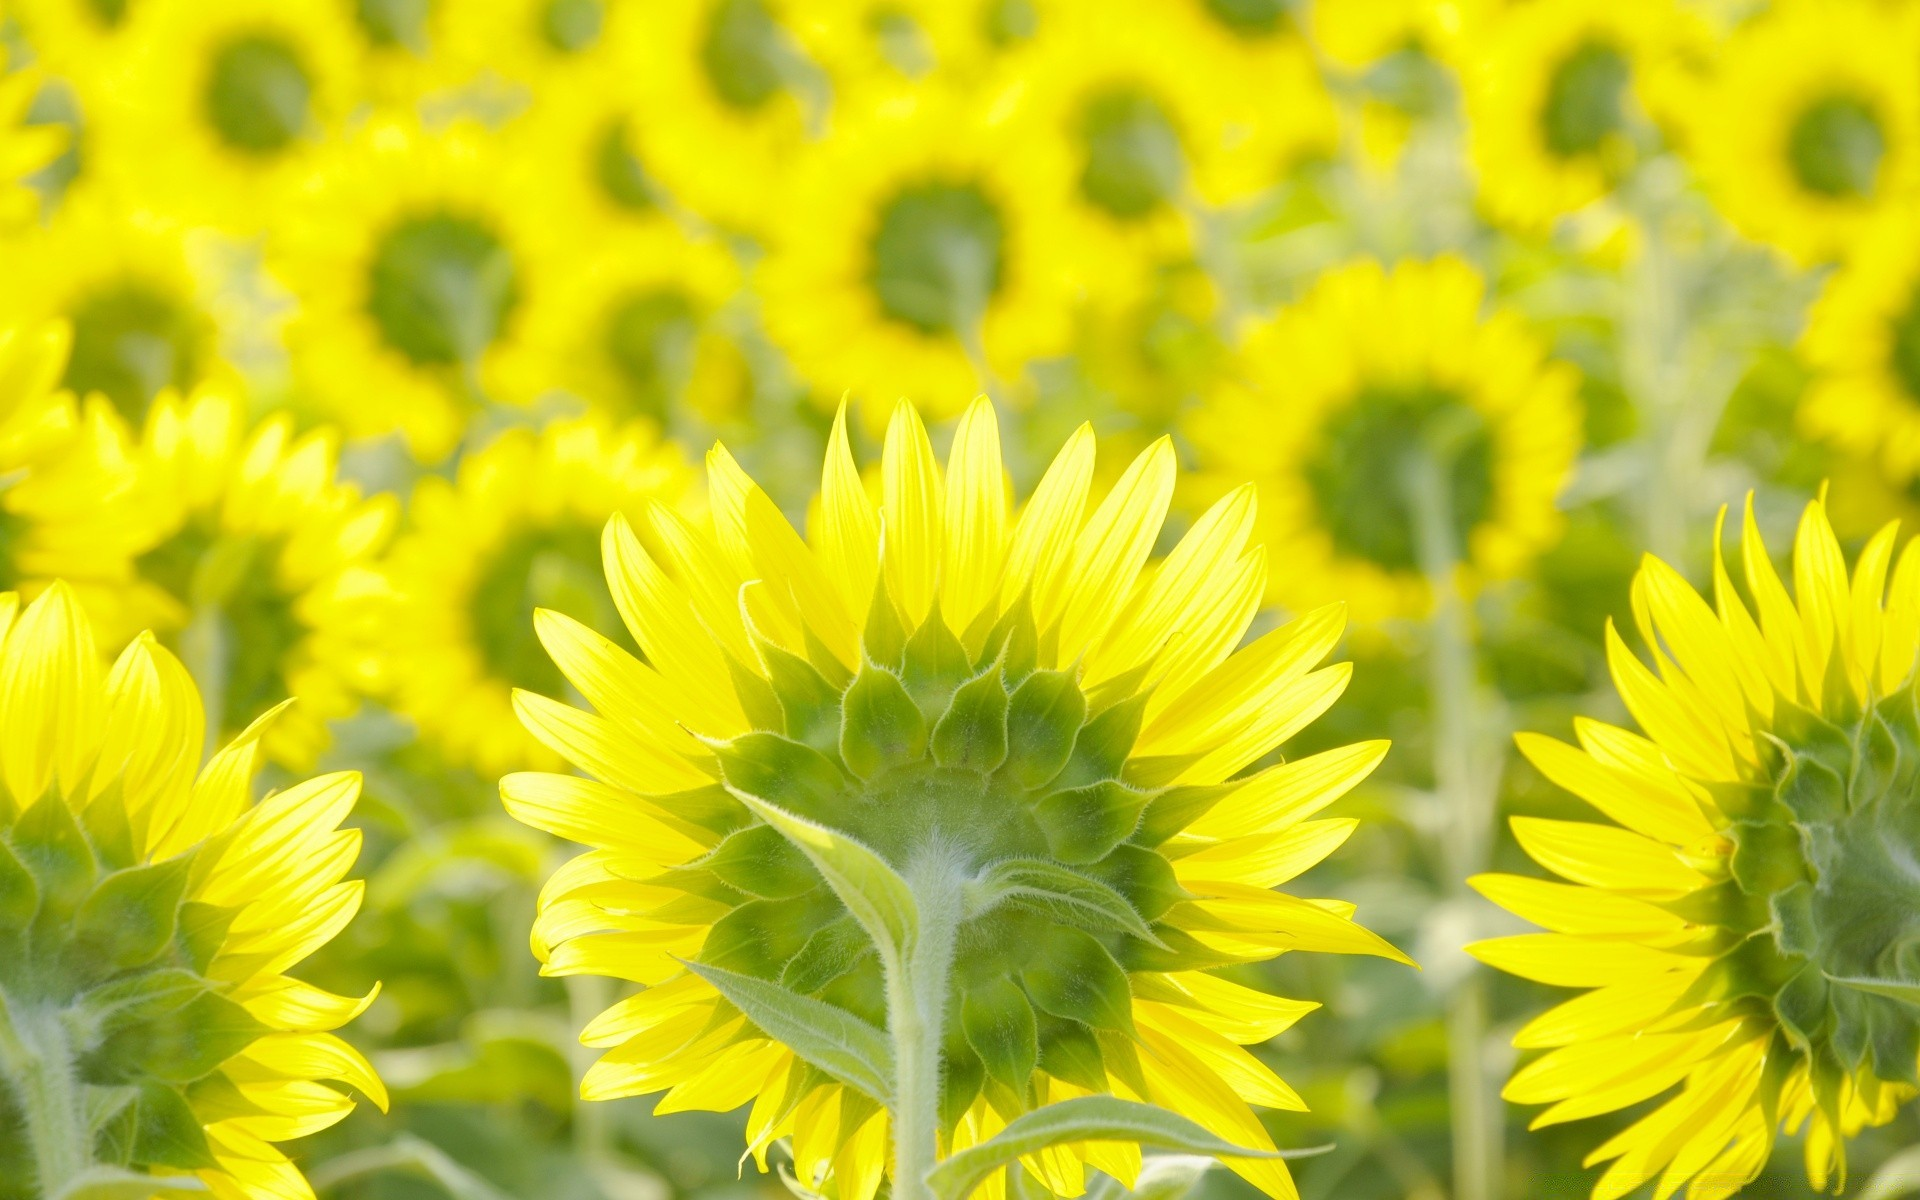 Sunflower Field Background IPhone Wallpapers For Free